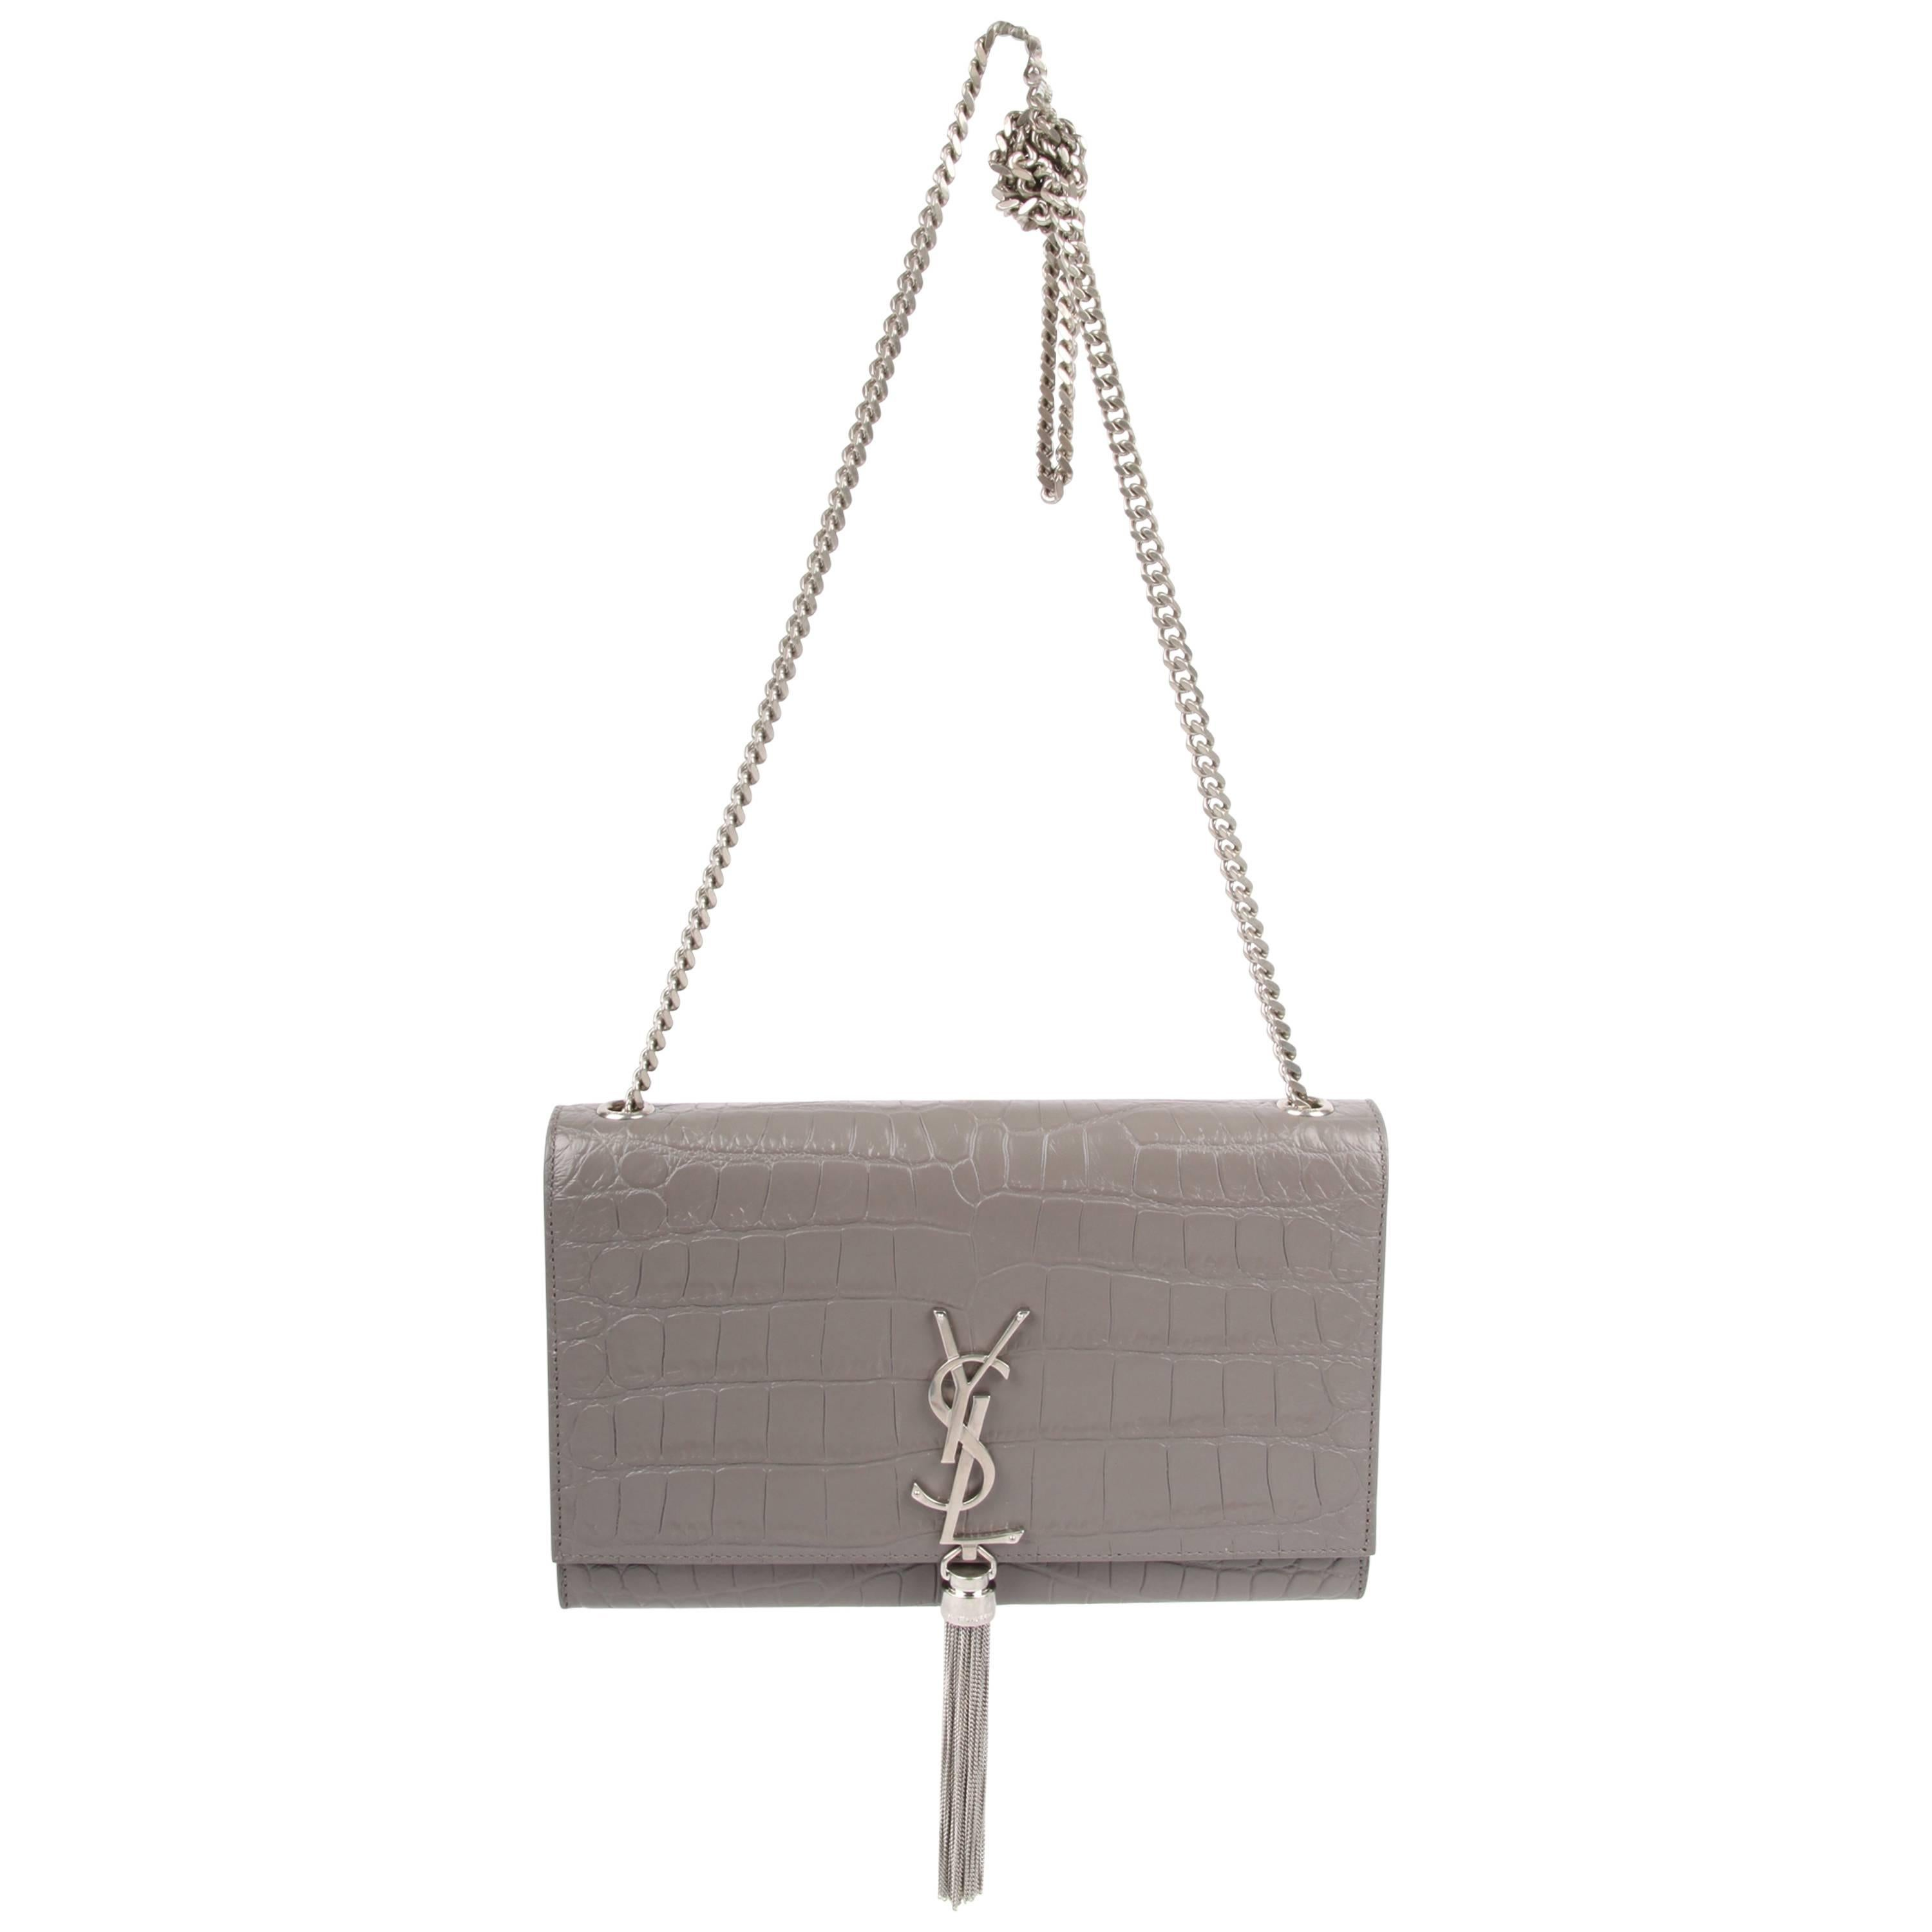 adc44afab28 Yves Saint Laurent YSL Monogram Kate Medium Shoulder Bag - taupe at 1stdibs